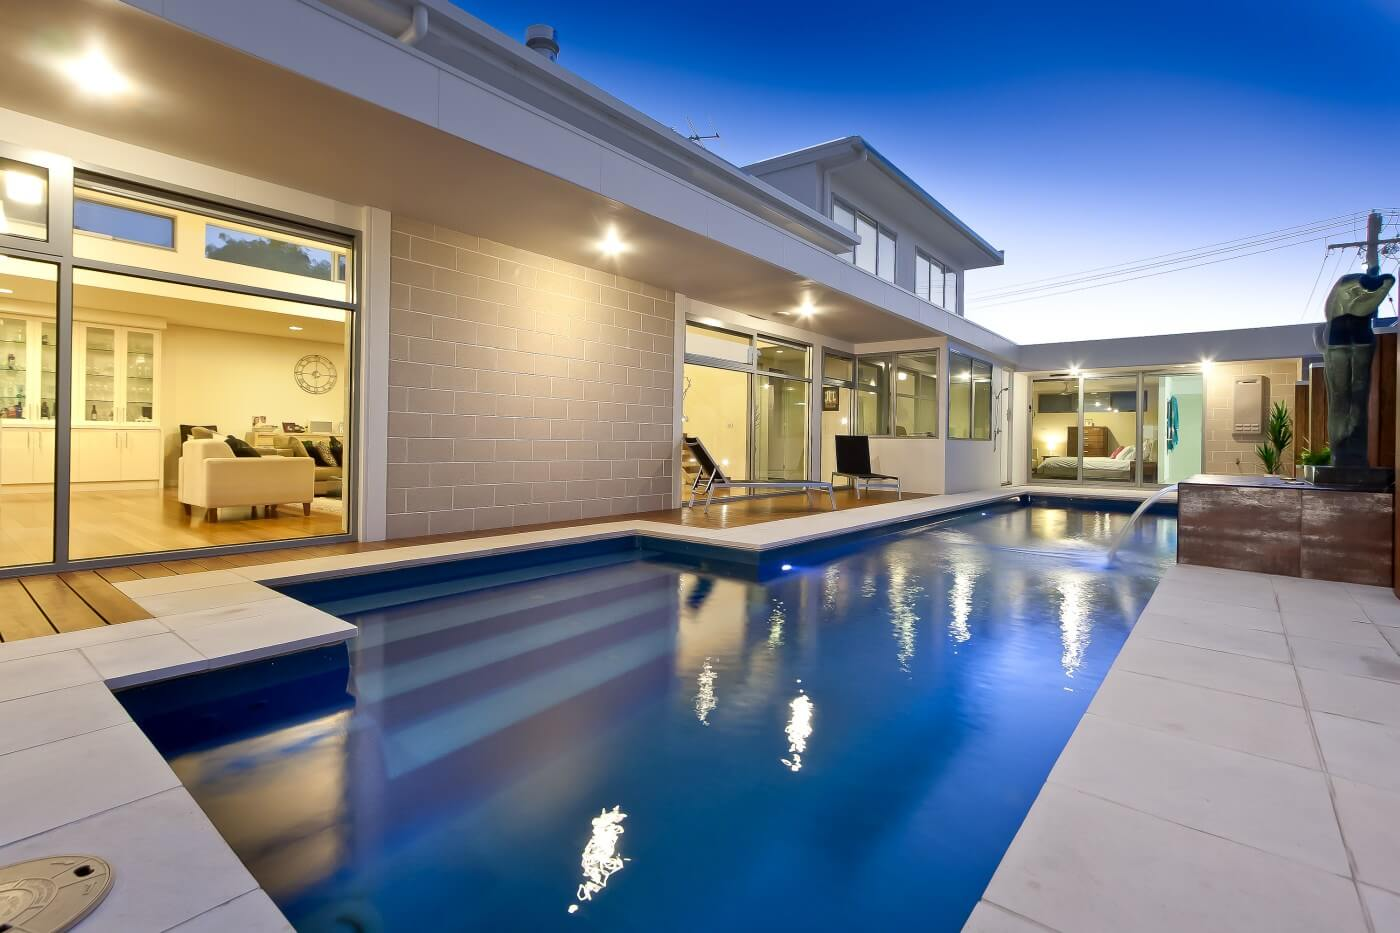 The Best Pool Design Ideas For Your Backyard Compass